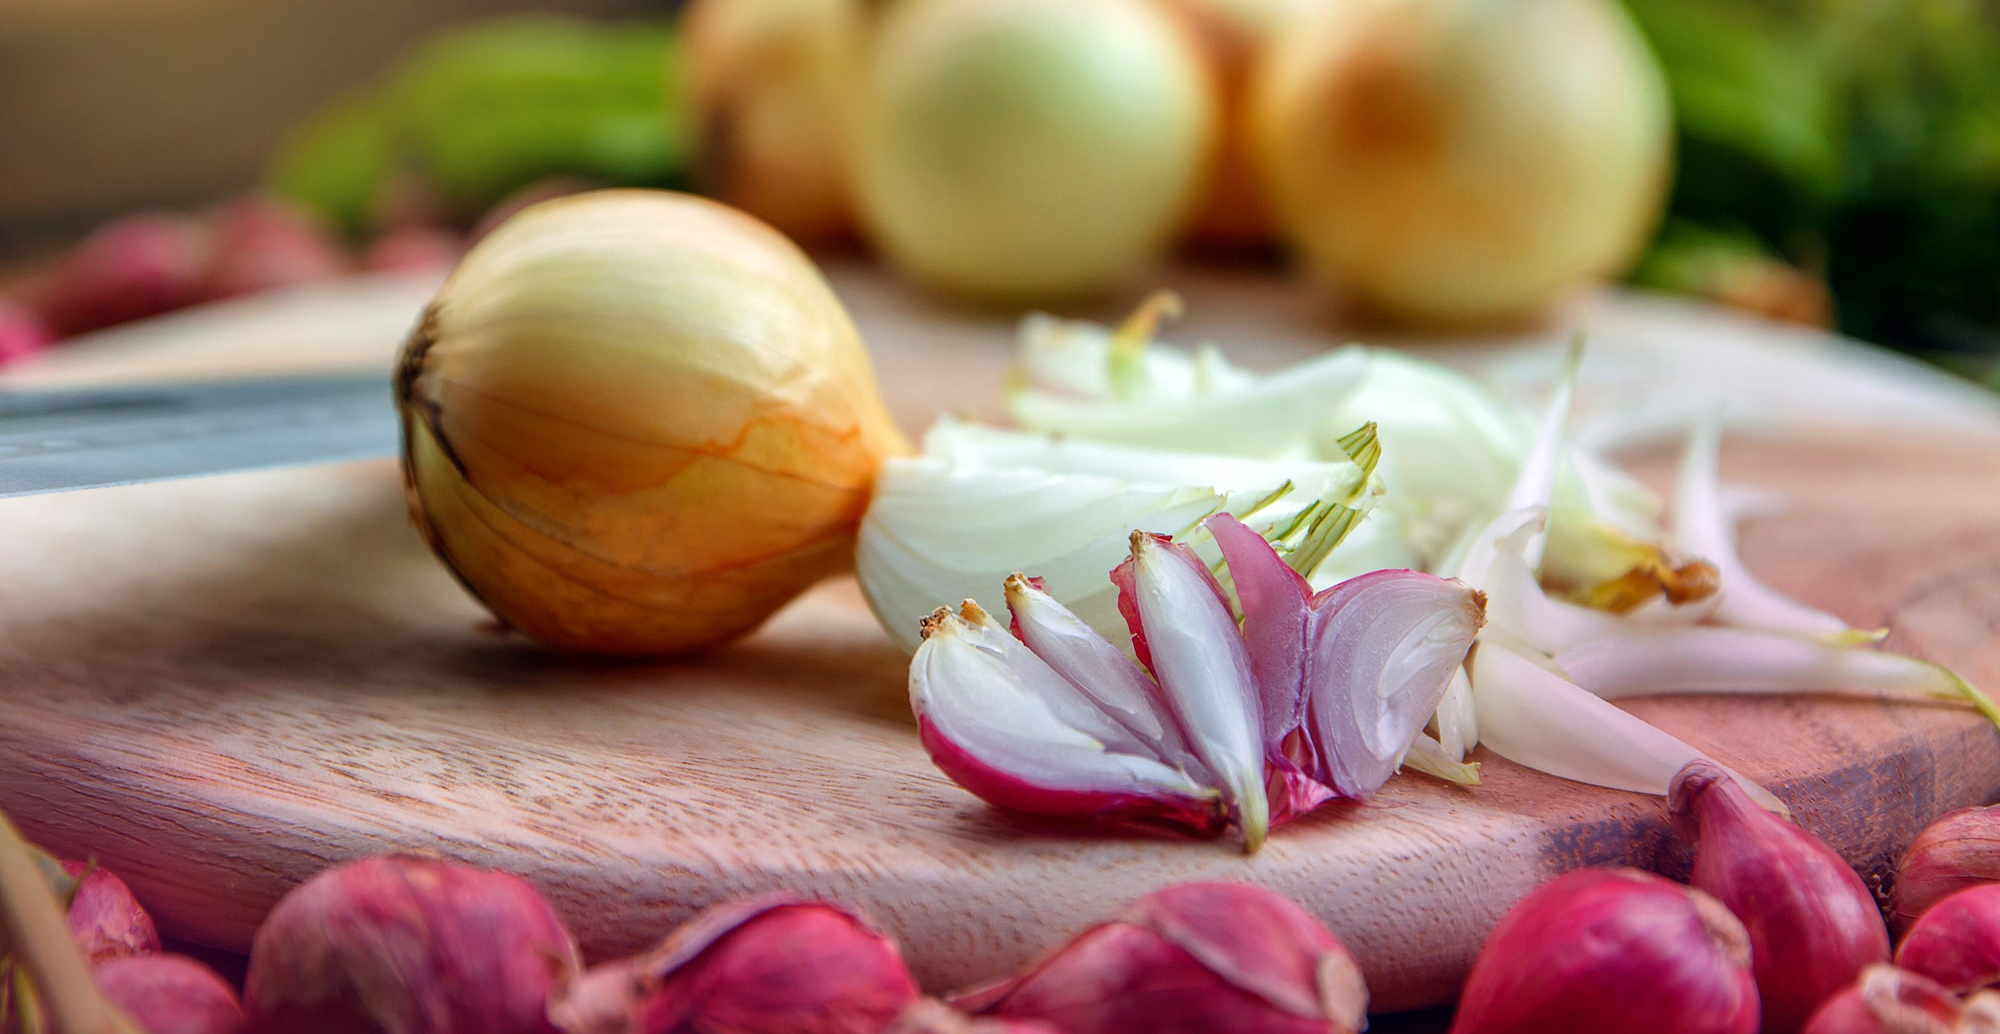 Bizzare facts & the history of onions